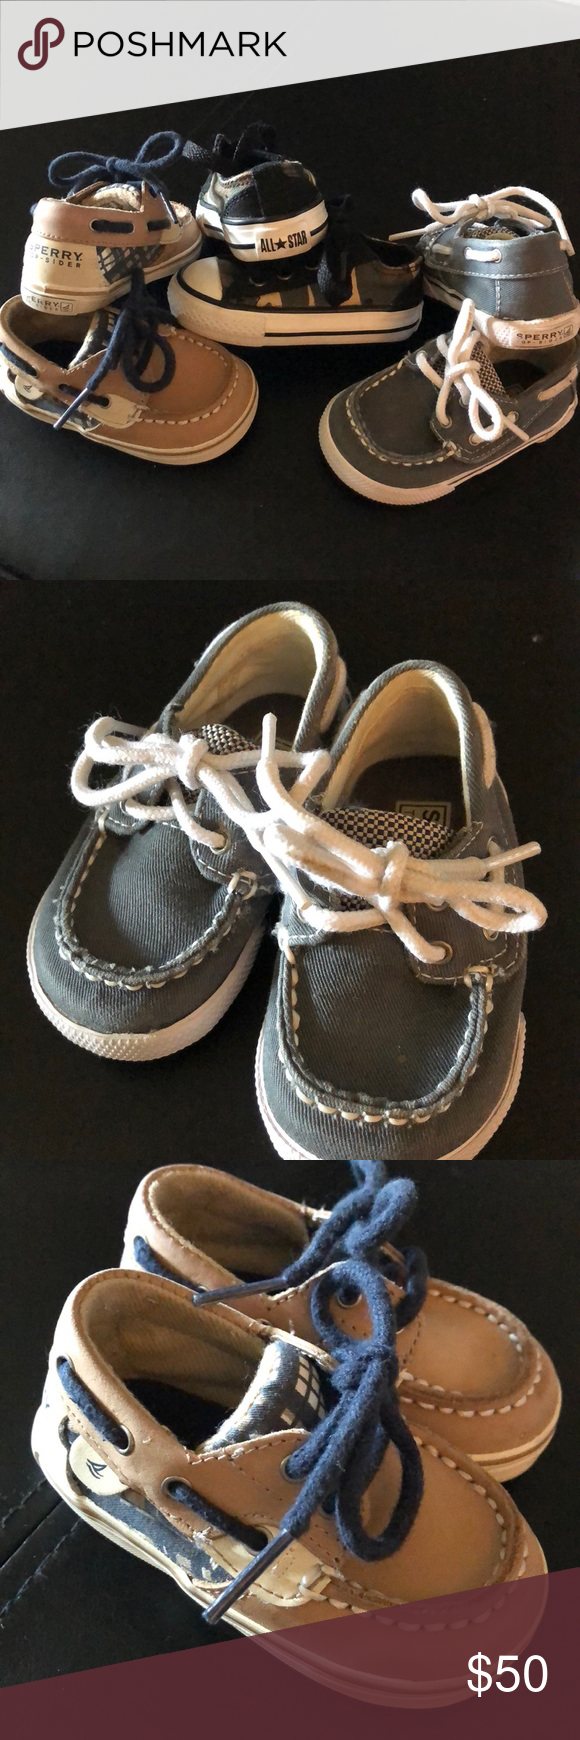 fad5ebc4c8b 3 Pairs of infant size 2 Sperry x2 converse x1 3 Pairs of infant size 2  Sperry x2 converse x1 sperry Converse Shoes Baby   Walker